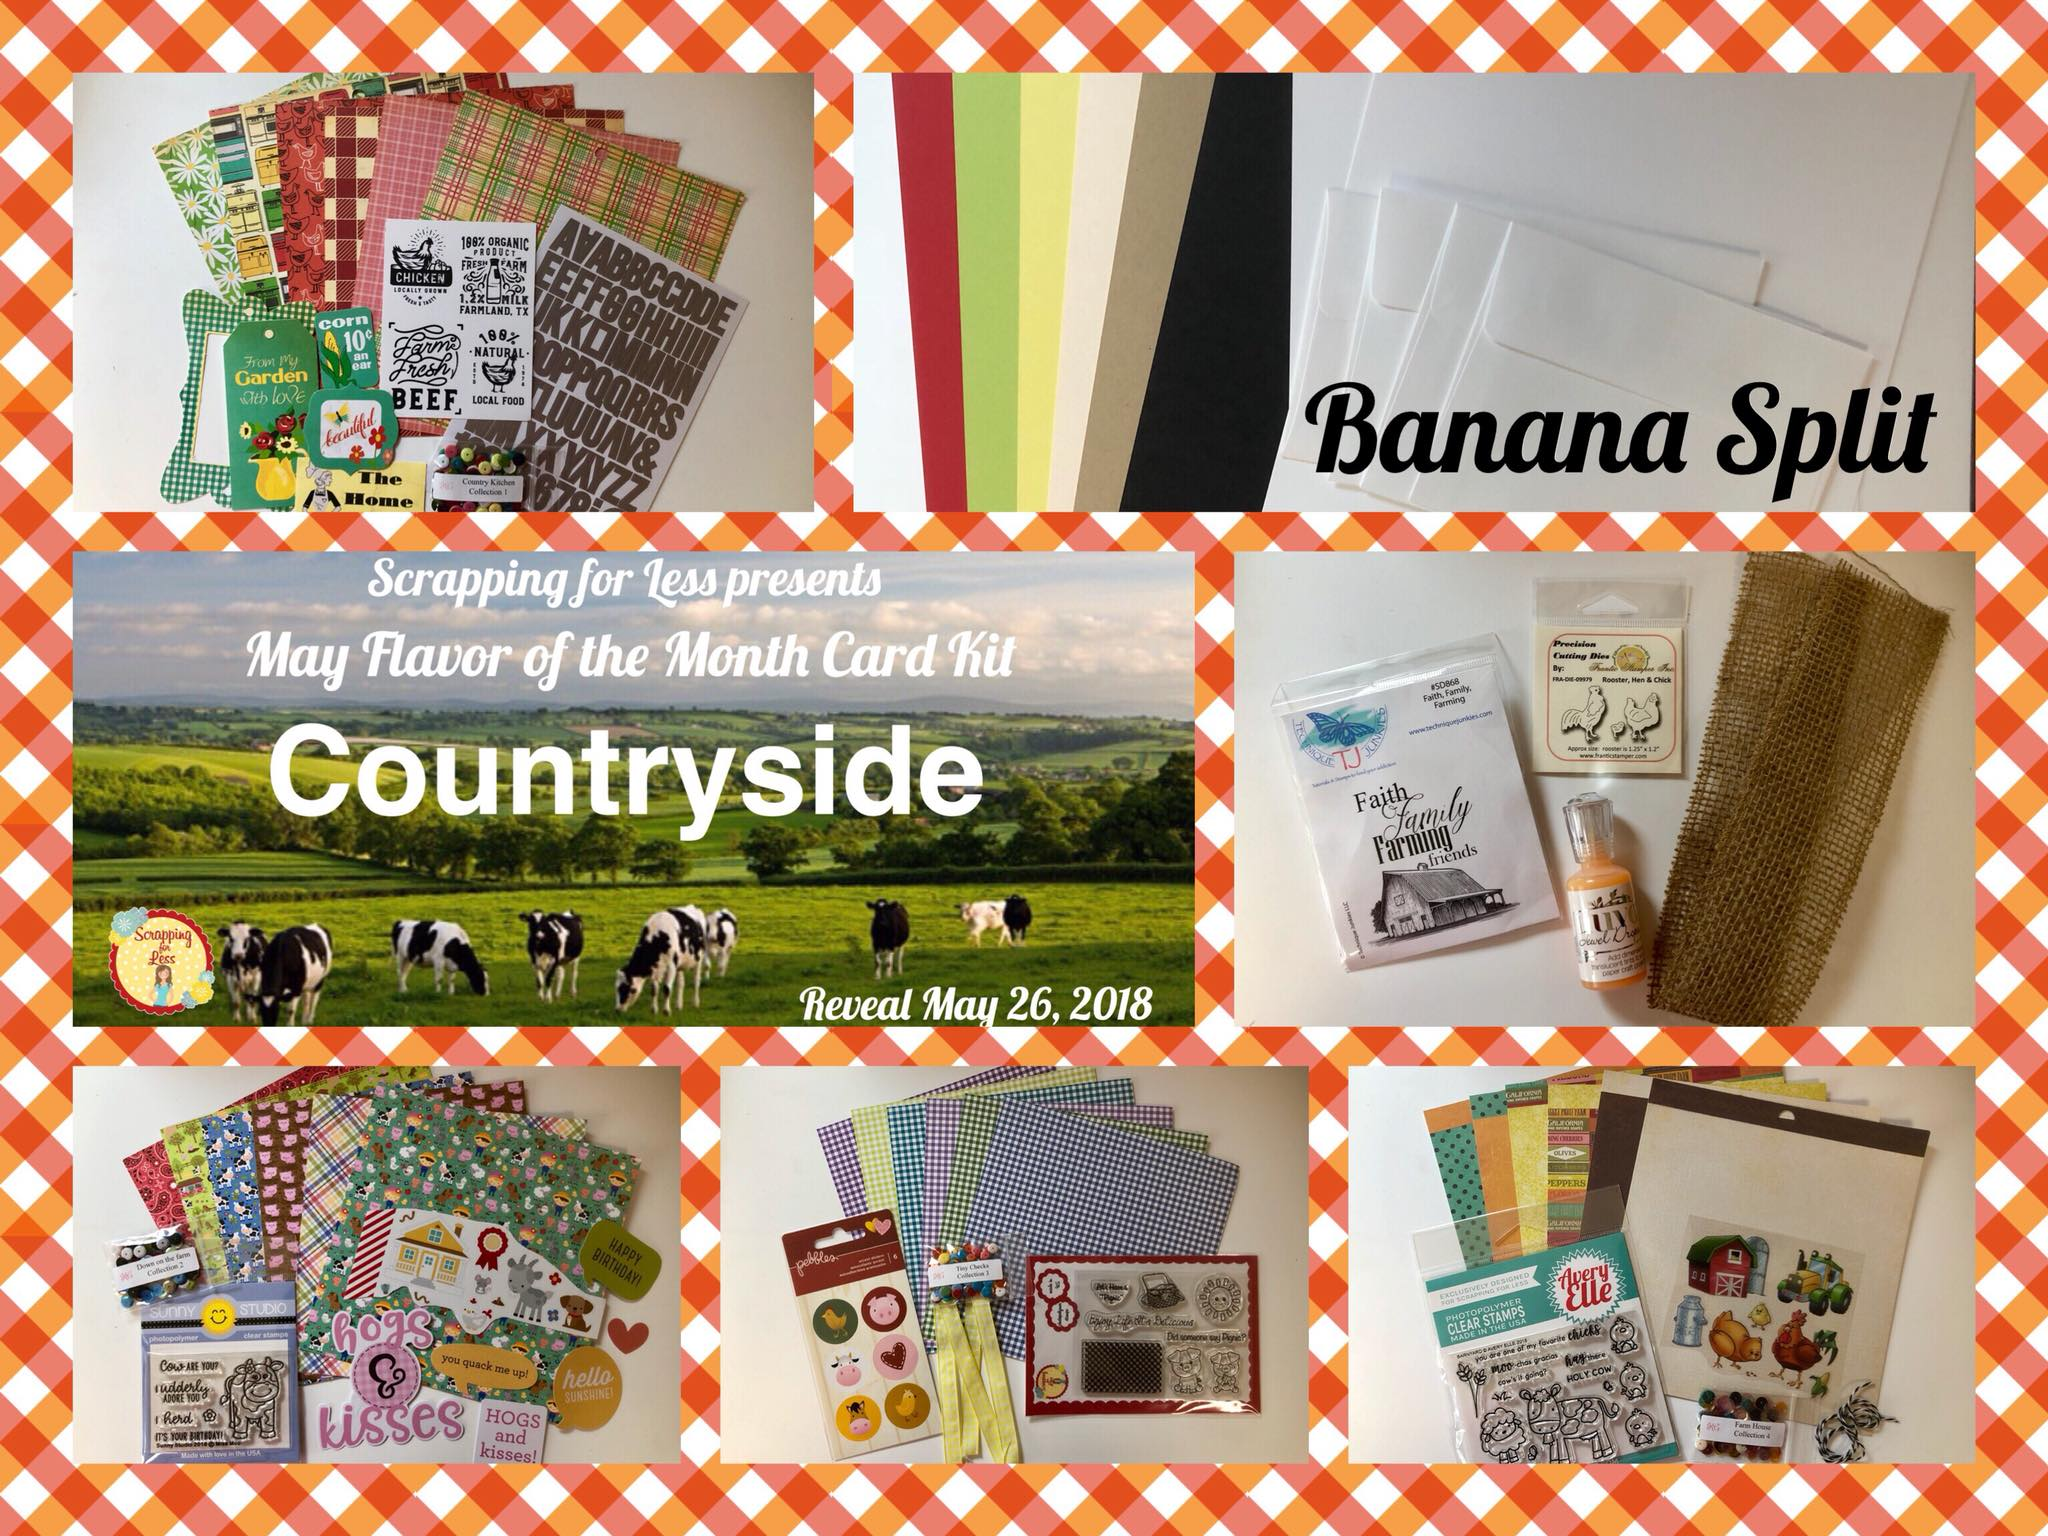 May Flavor of the Month Banana Split Countryside